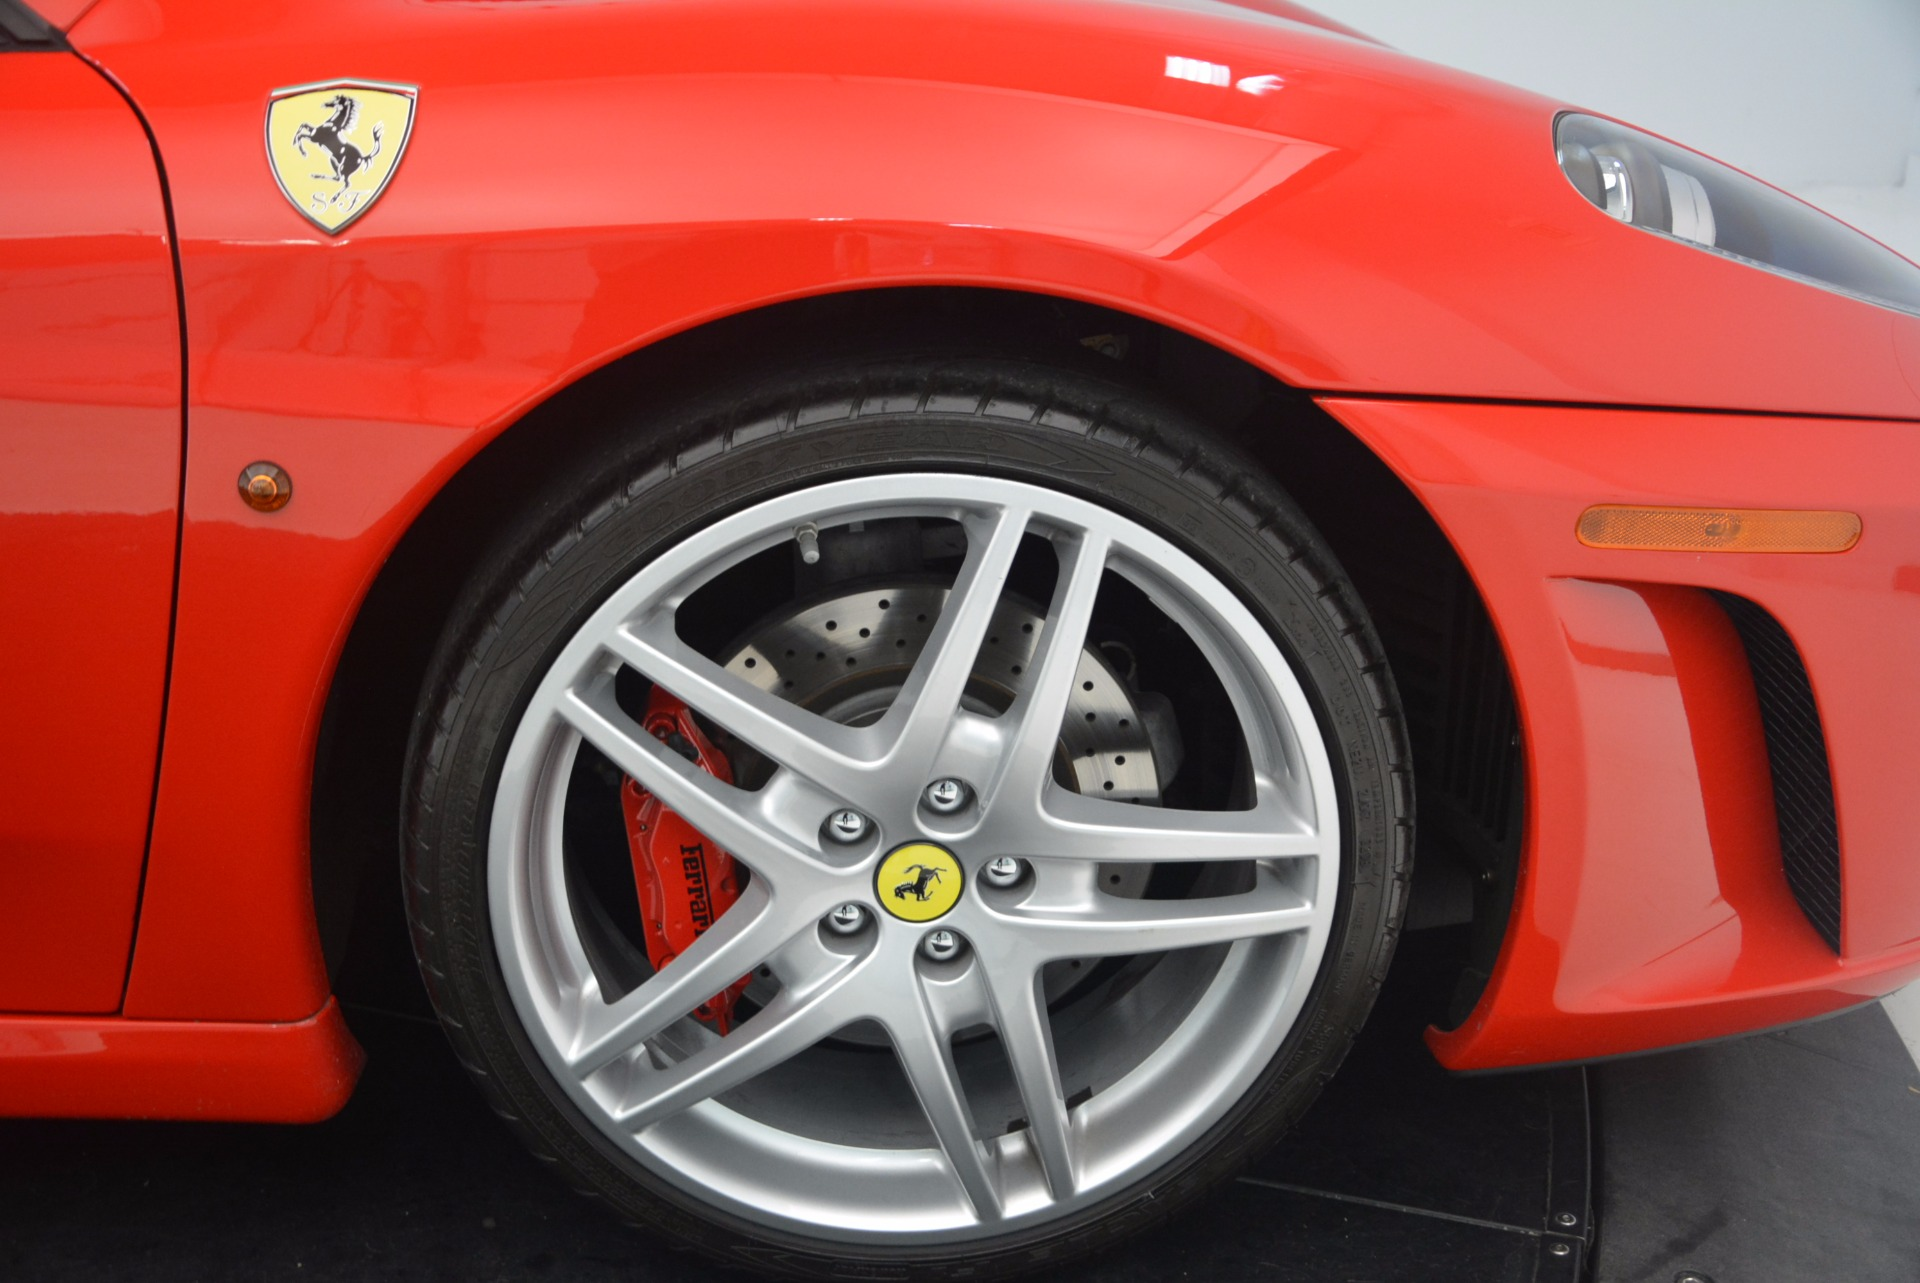 Used 2005 Ferrari F430  For Sale In Westport, CT 1184_p18